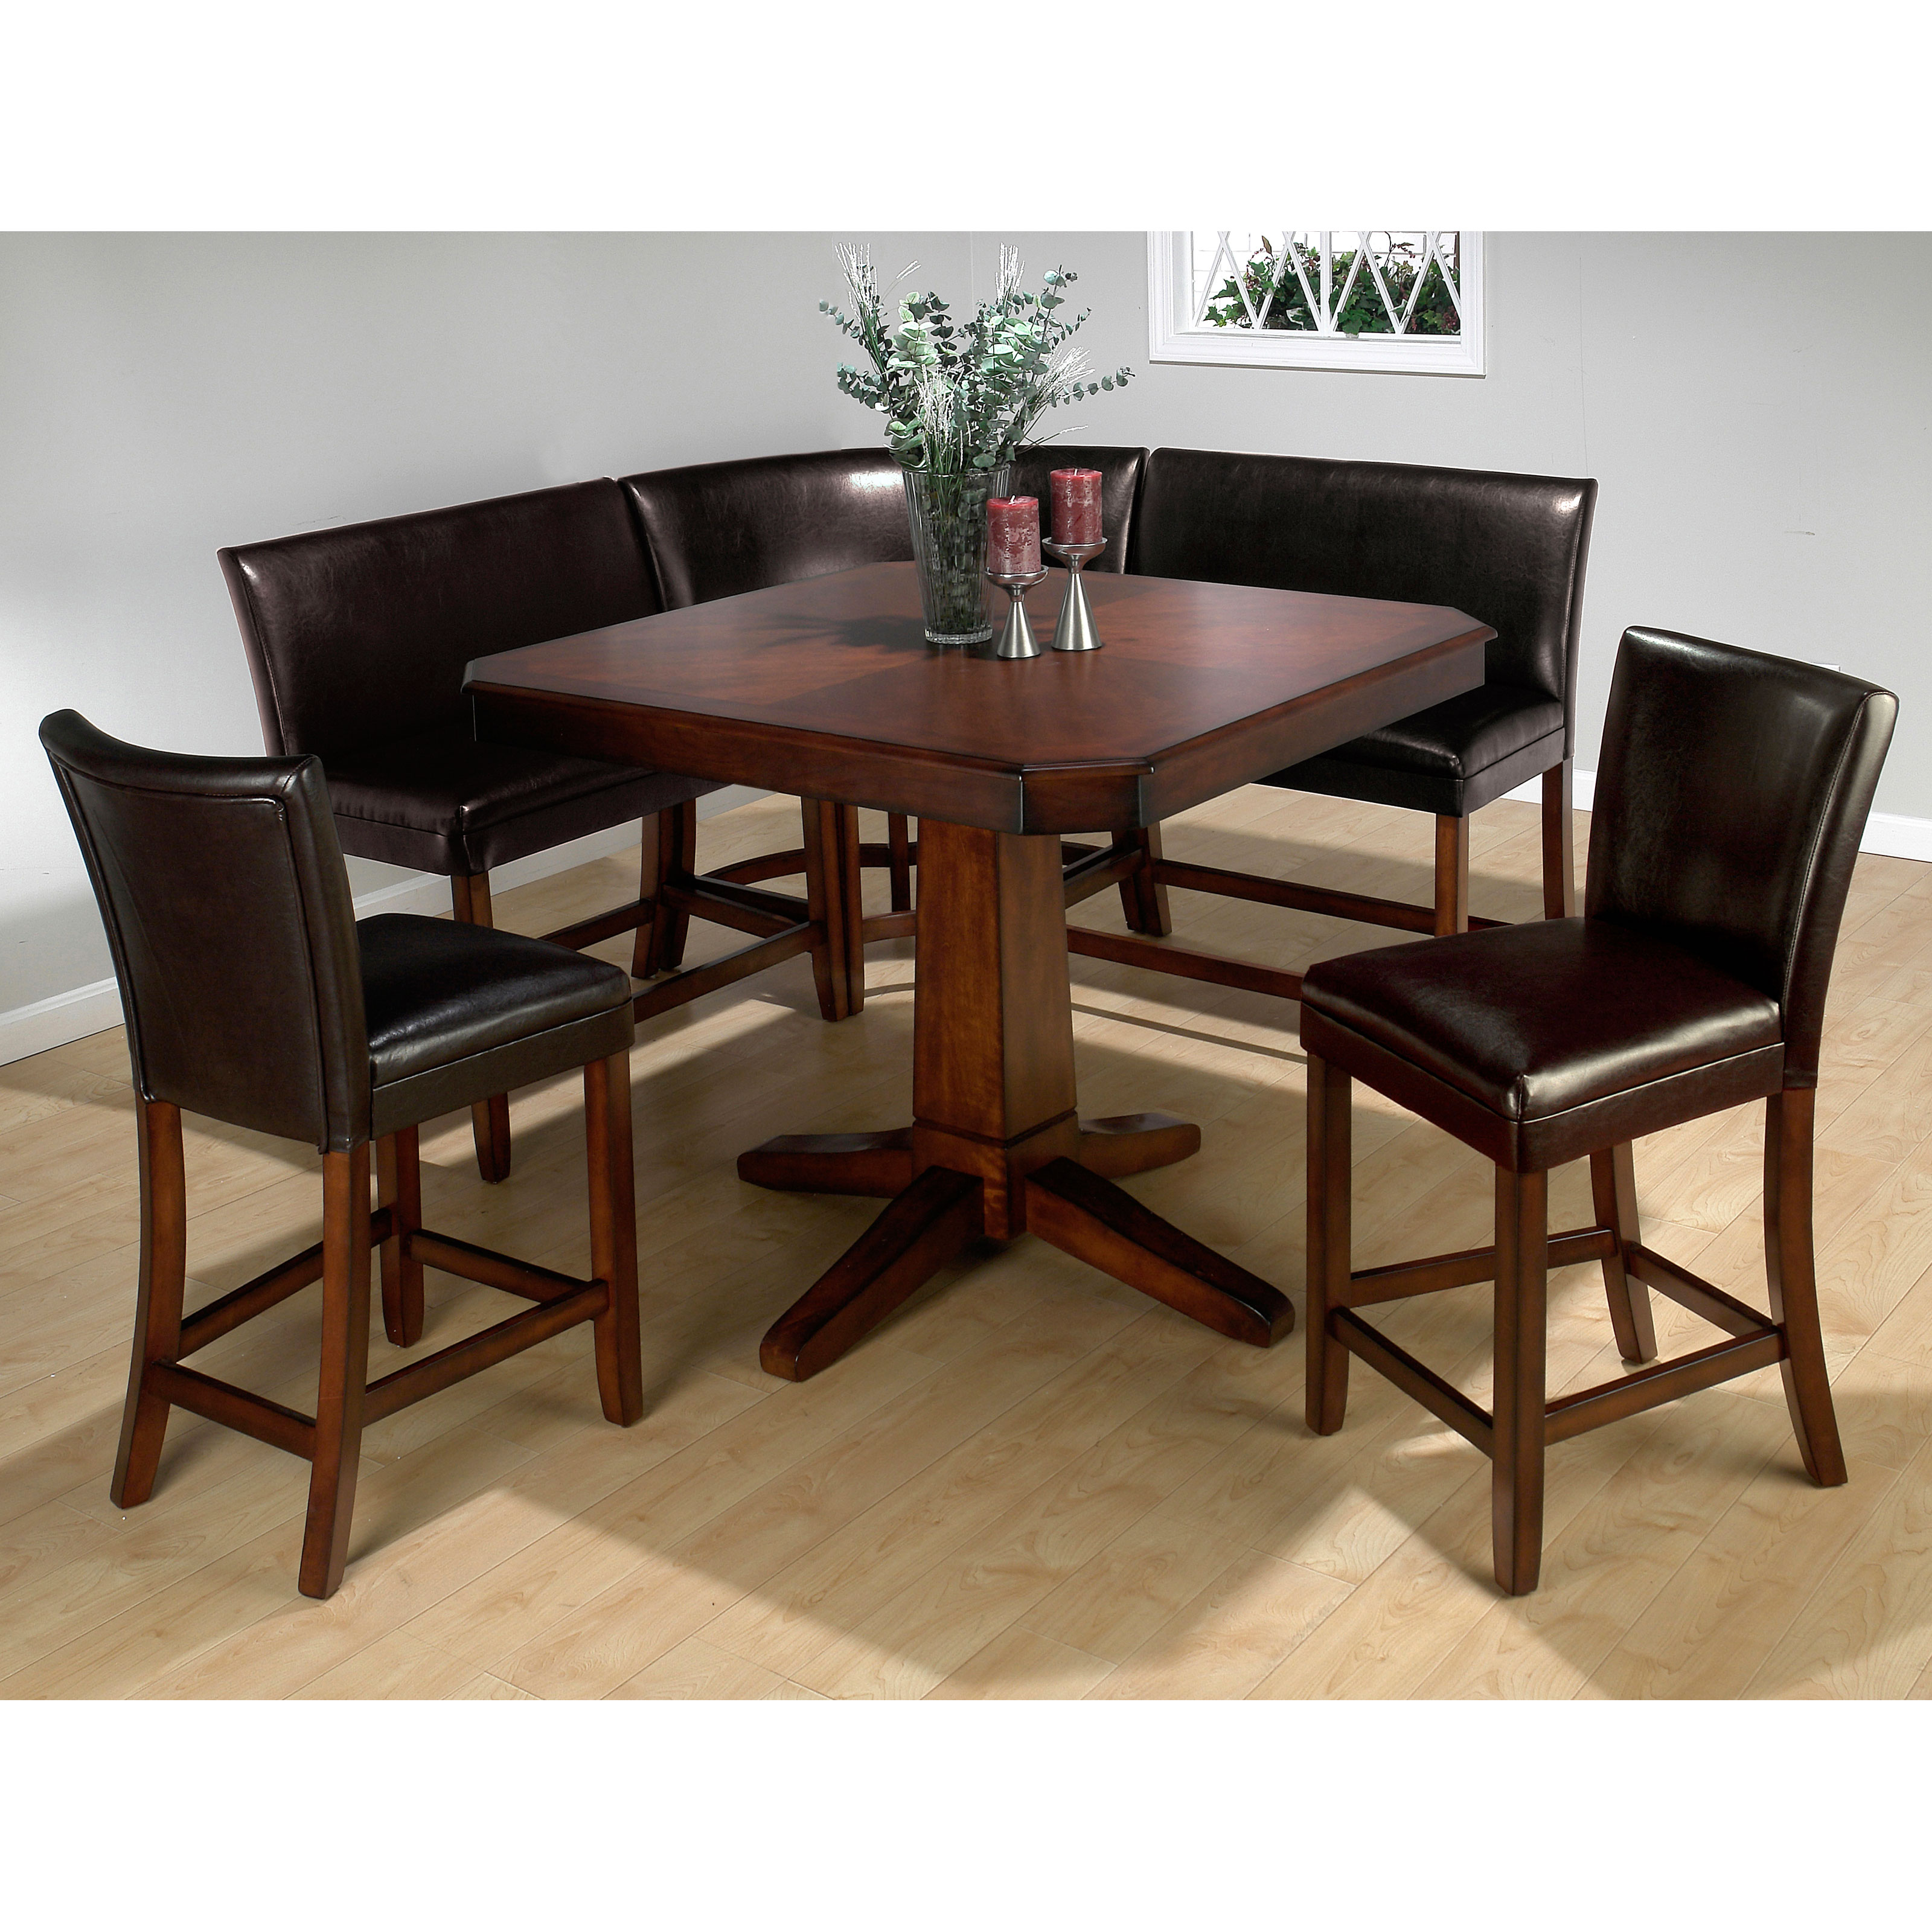 Jofran Chadwick Counter Height Table With Corner Bench And 2 Side Chairs At Hayneedle